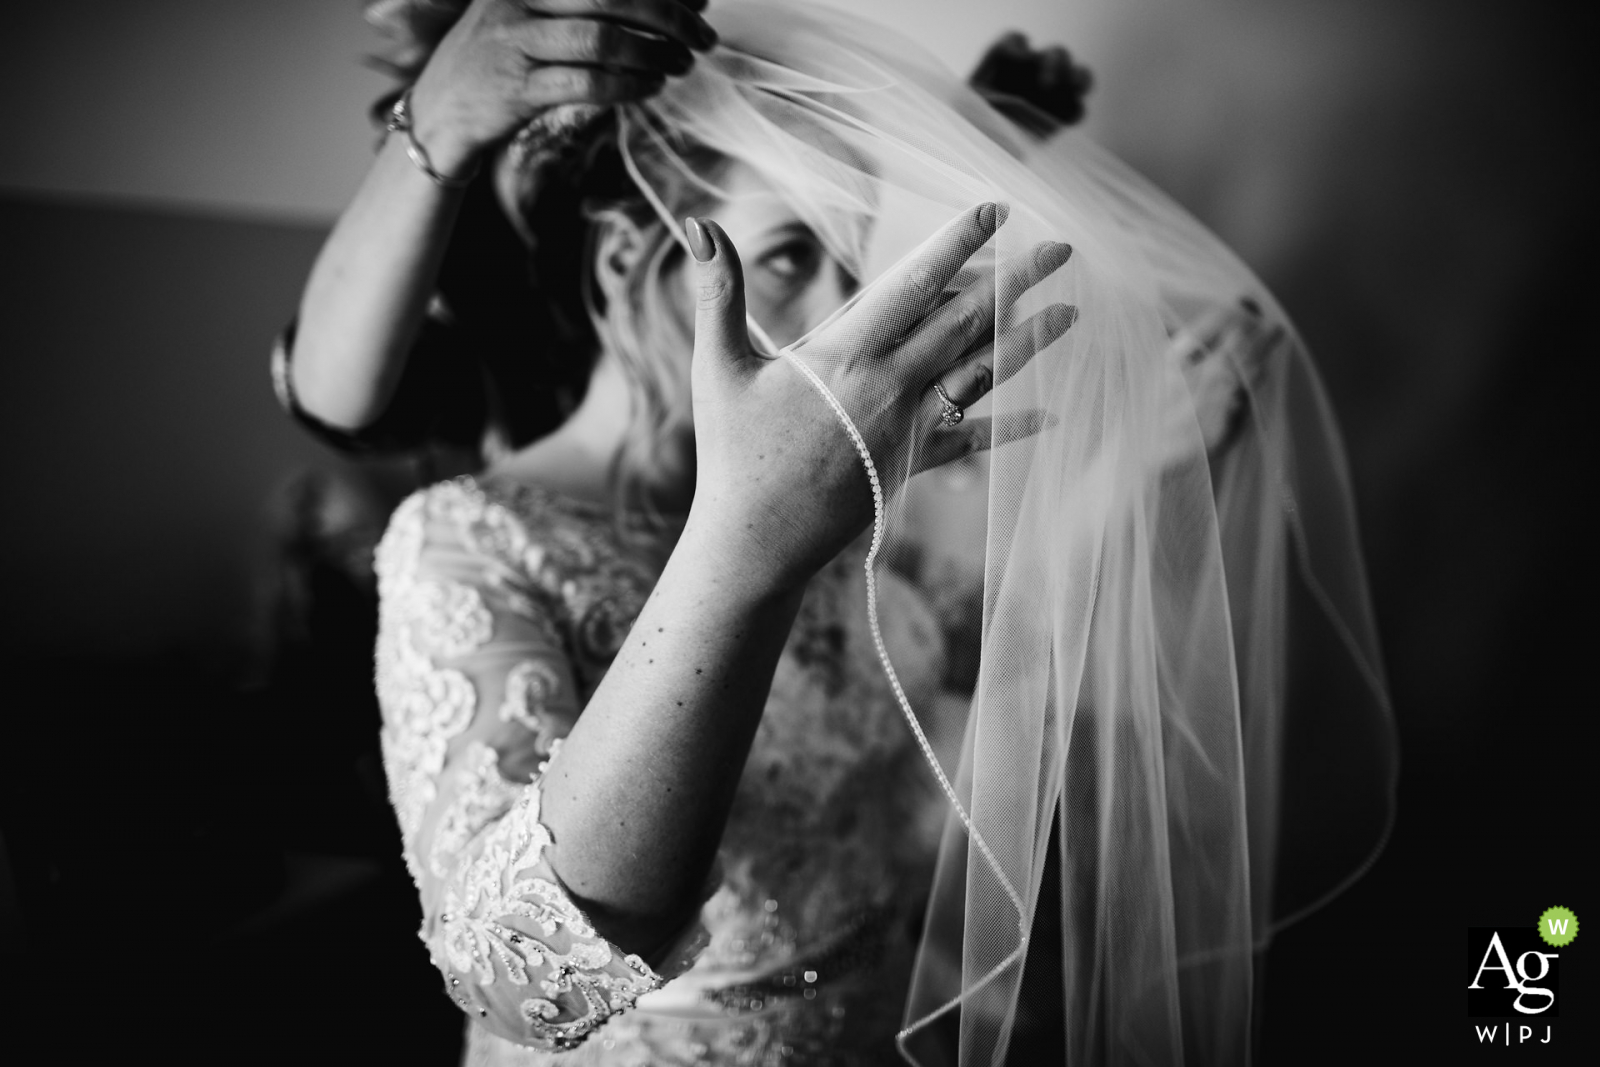 Aaron Storry is an artistic wedding photographer for Northamptonshire